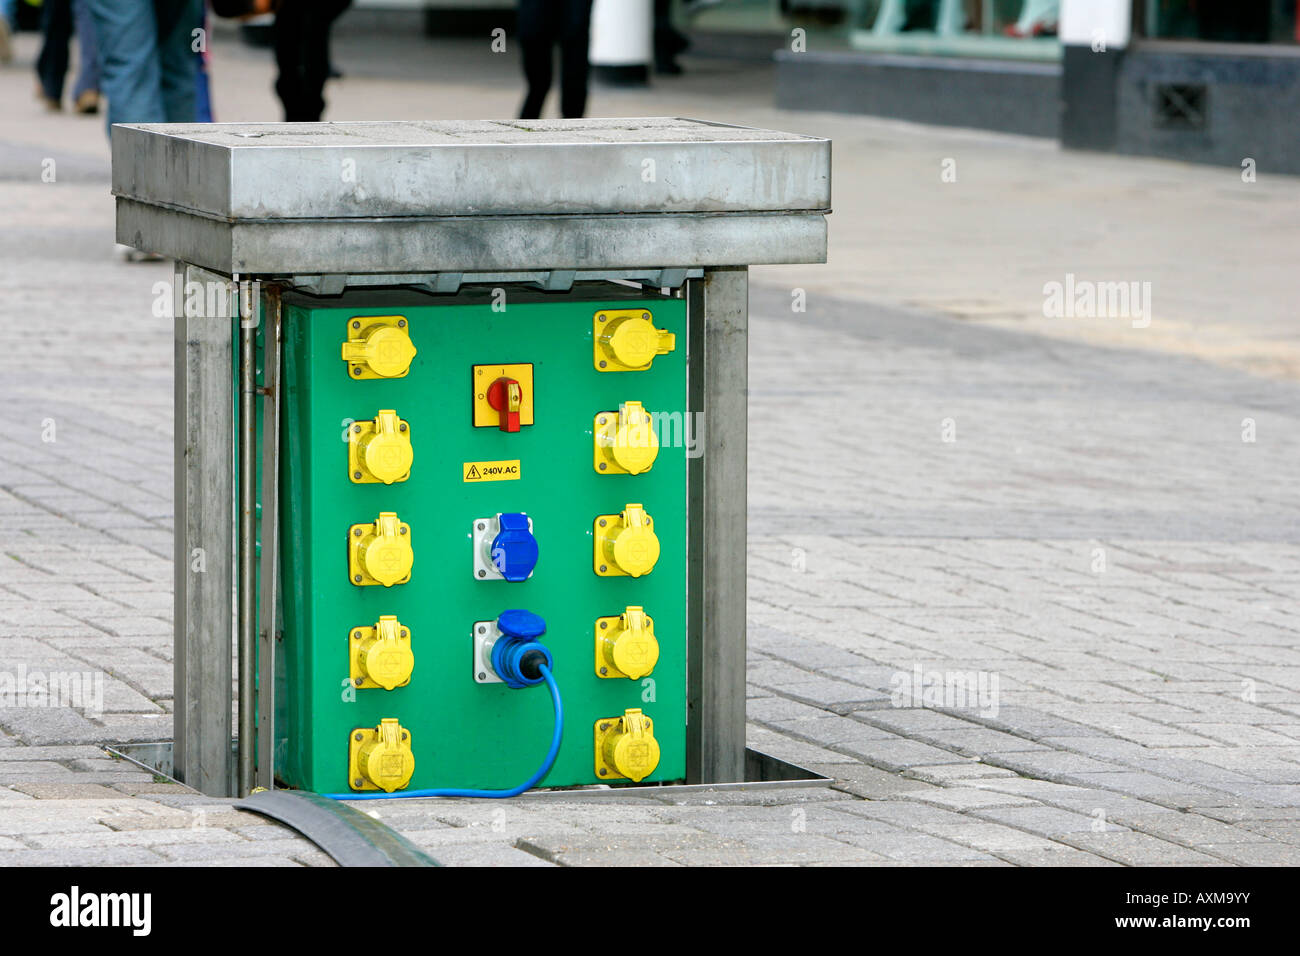 Distribution point electricity power box green out site street electrical electrocution connection pedestrian zone Stock Photo